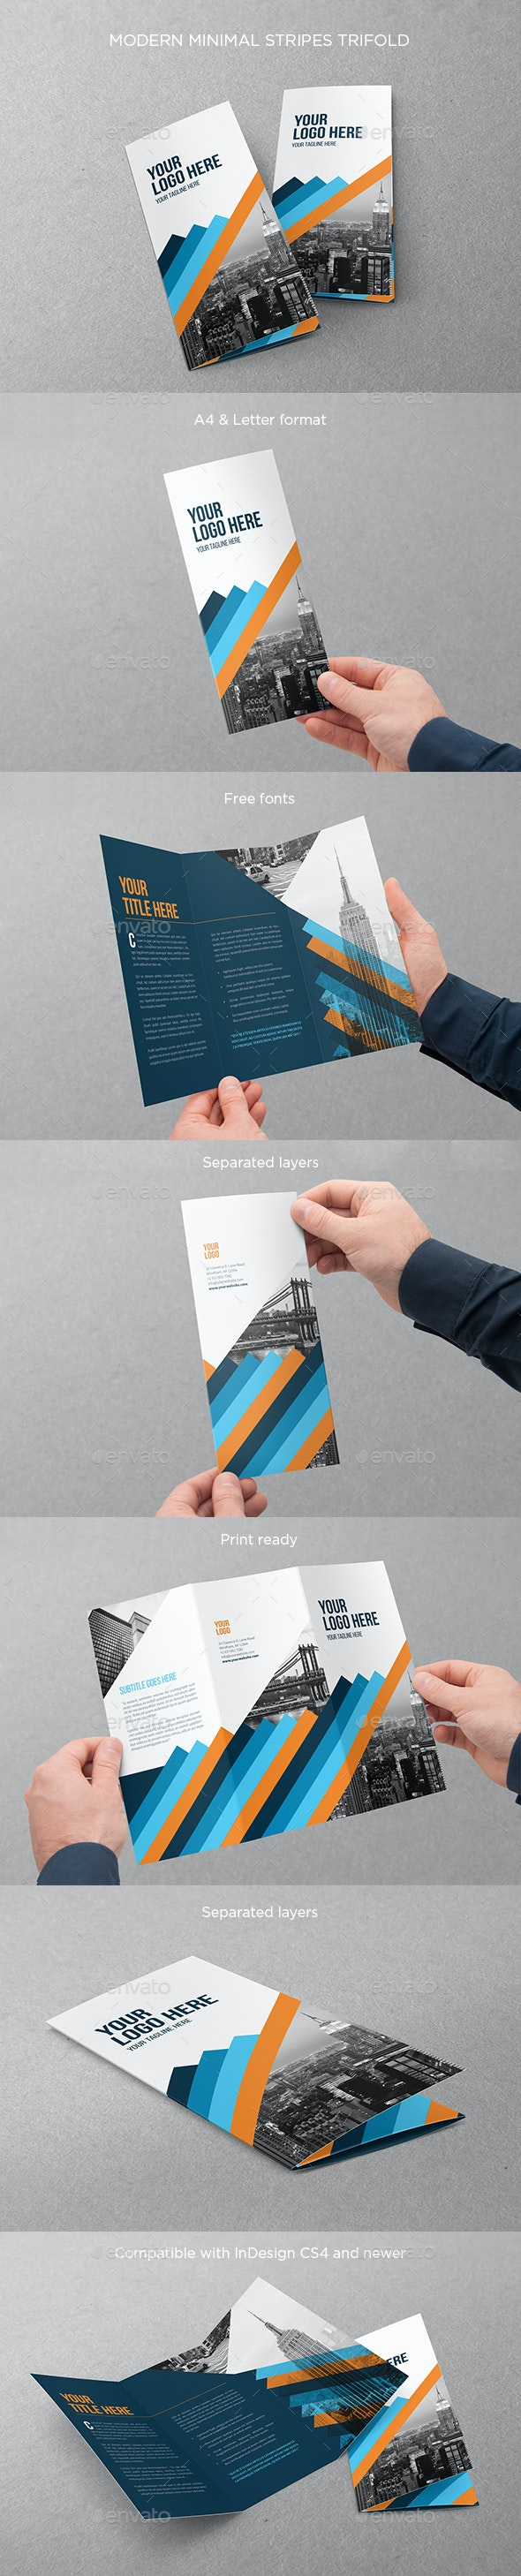 Modern Minimal Stripes Trifold - Brochures Print Templates